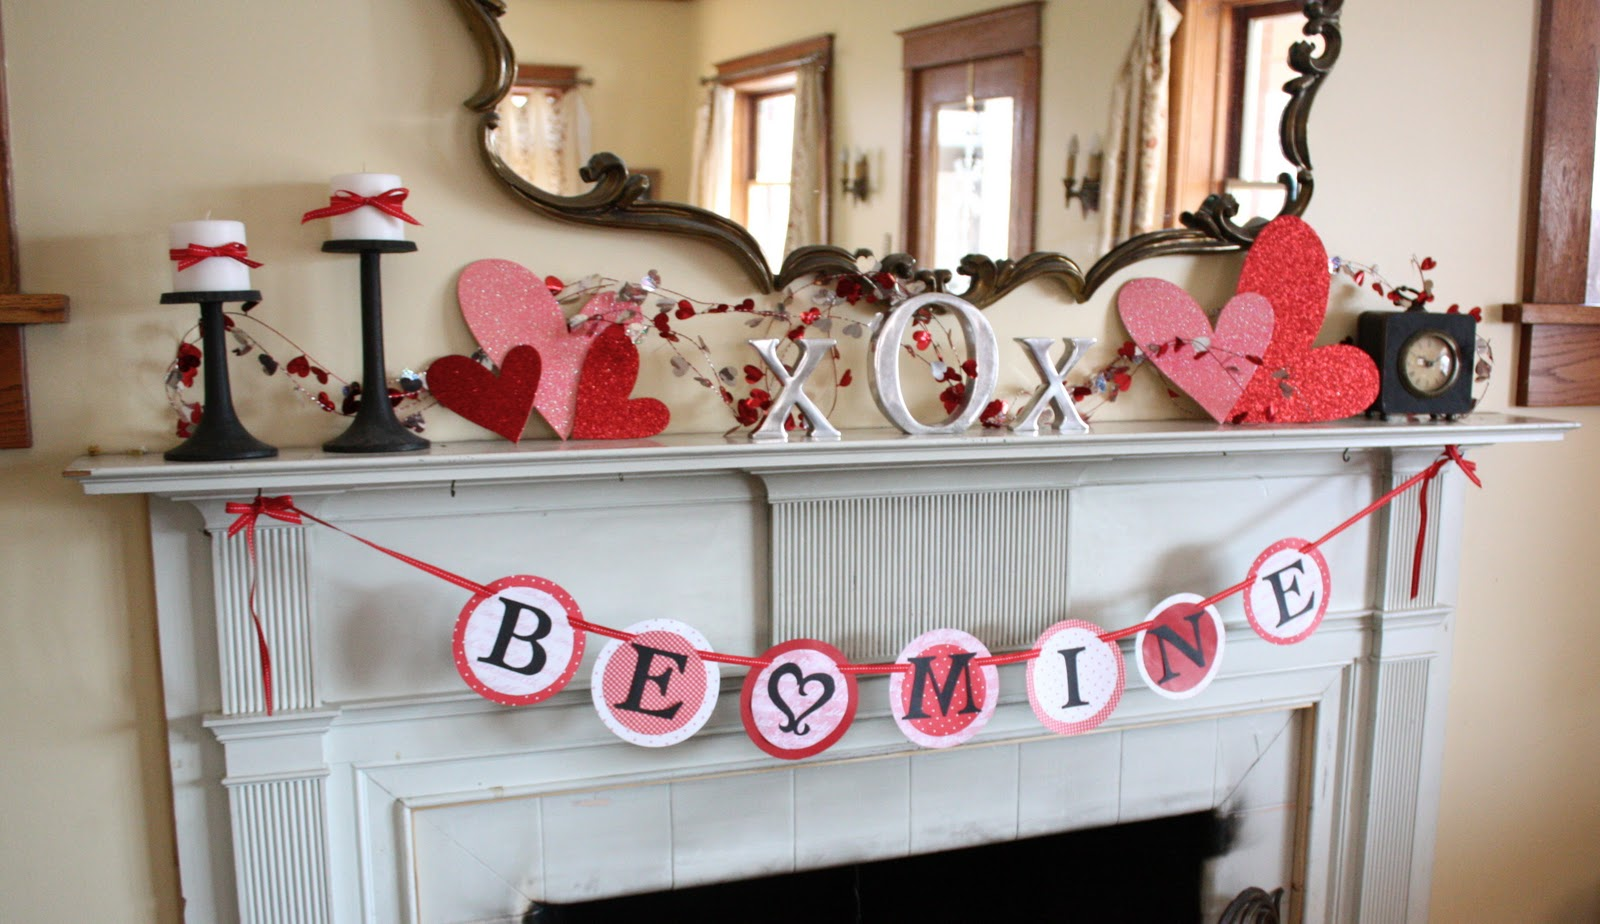 Valentine 39 s day decorations ideas 2016 to decorate bedroom office and house Ideas to decorate your house